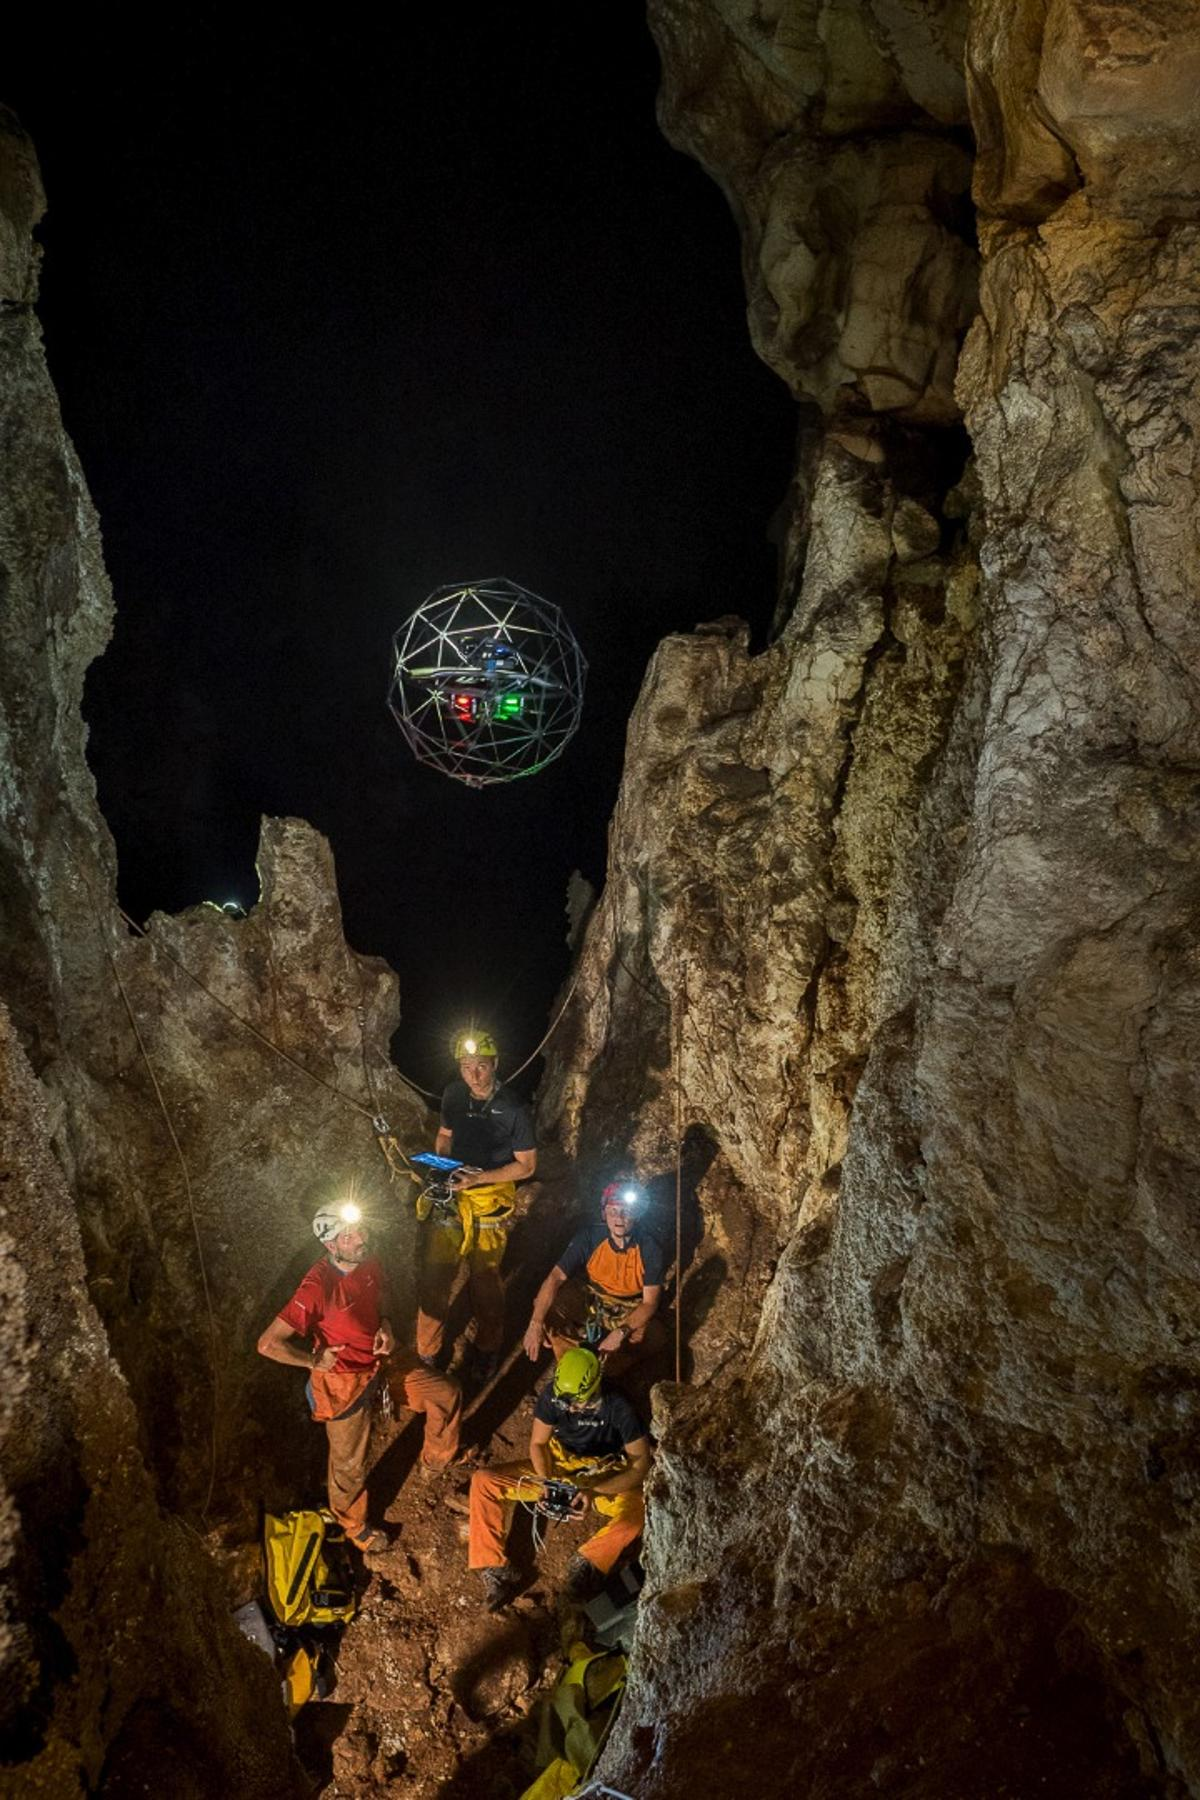 A crash-proof drone has been put to the test in caves in Sicily, as part of an ESA training program that could see it eventually used to explore Mars